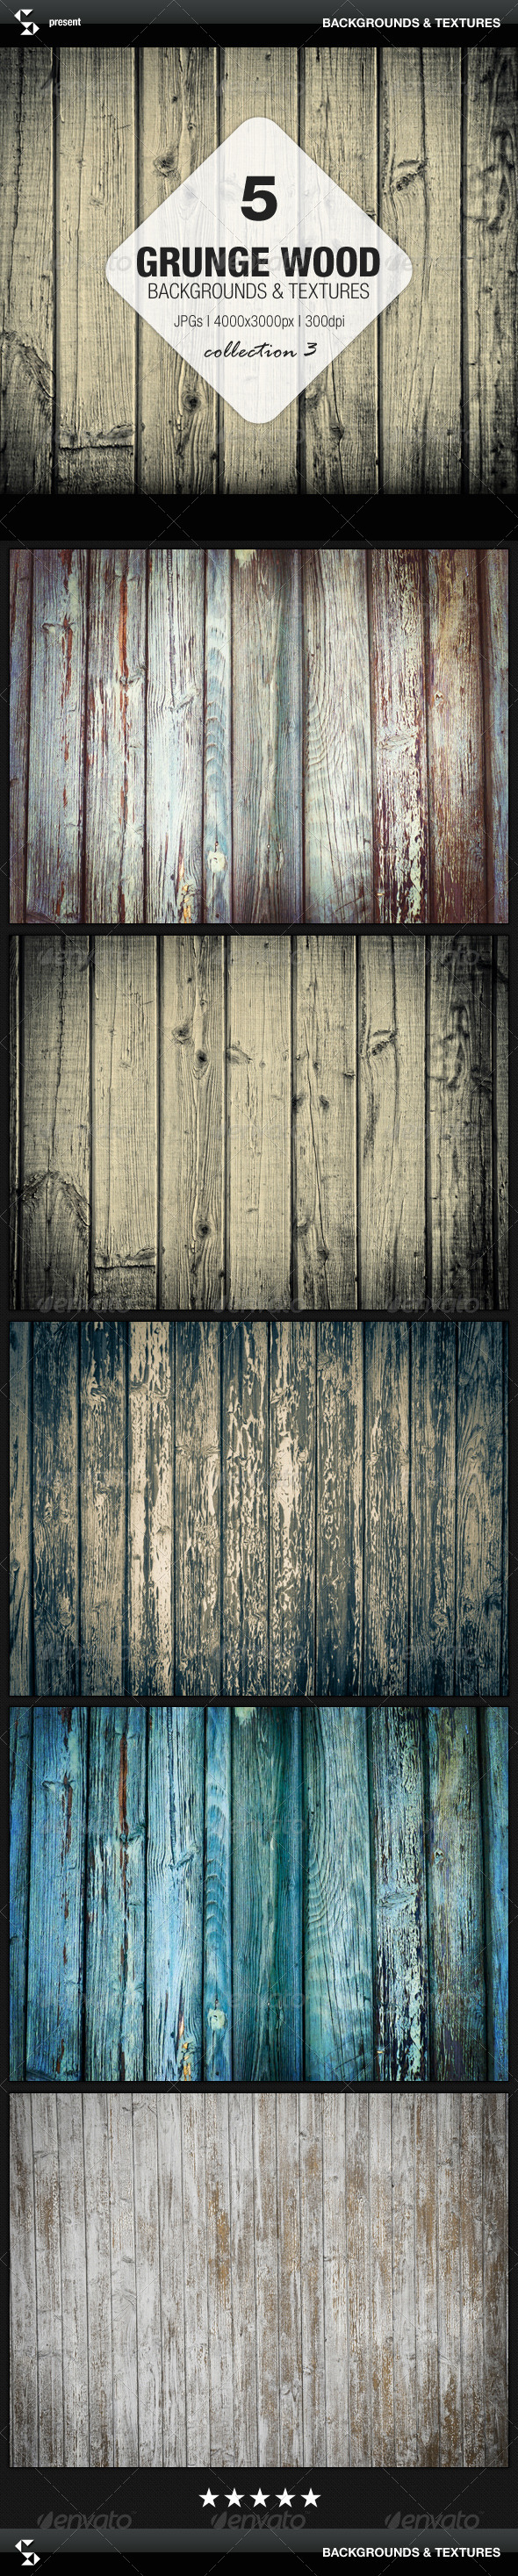 GraphicRiver Grunge Wood Backgrounds Collection 3 7091612